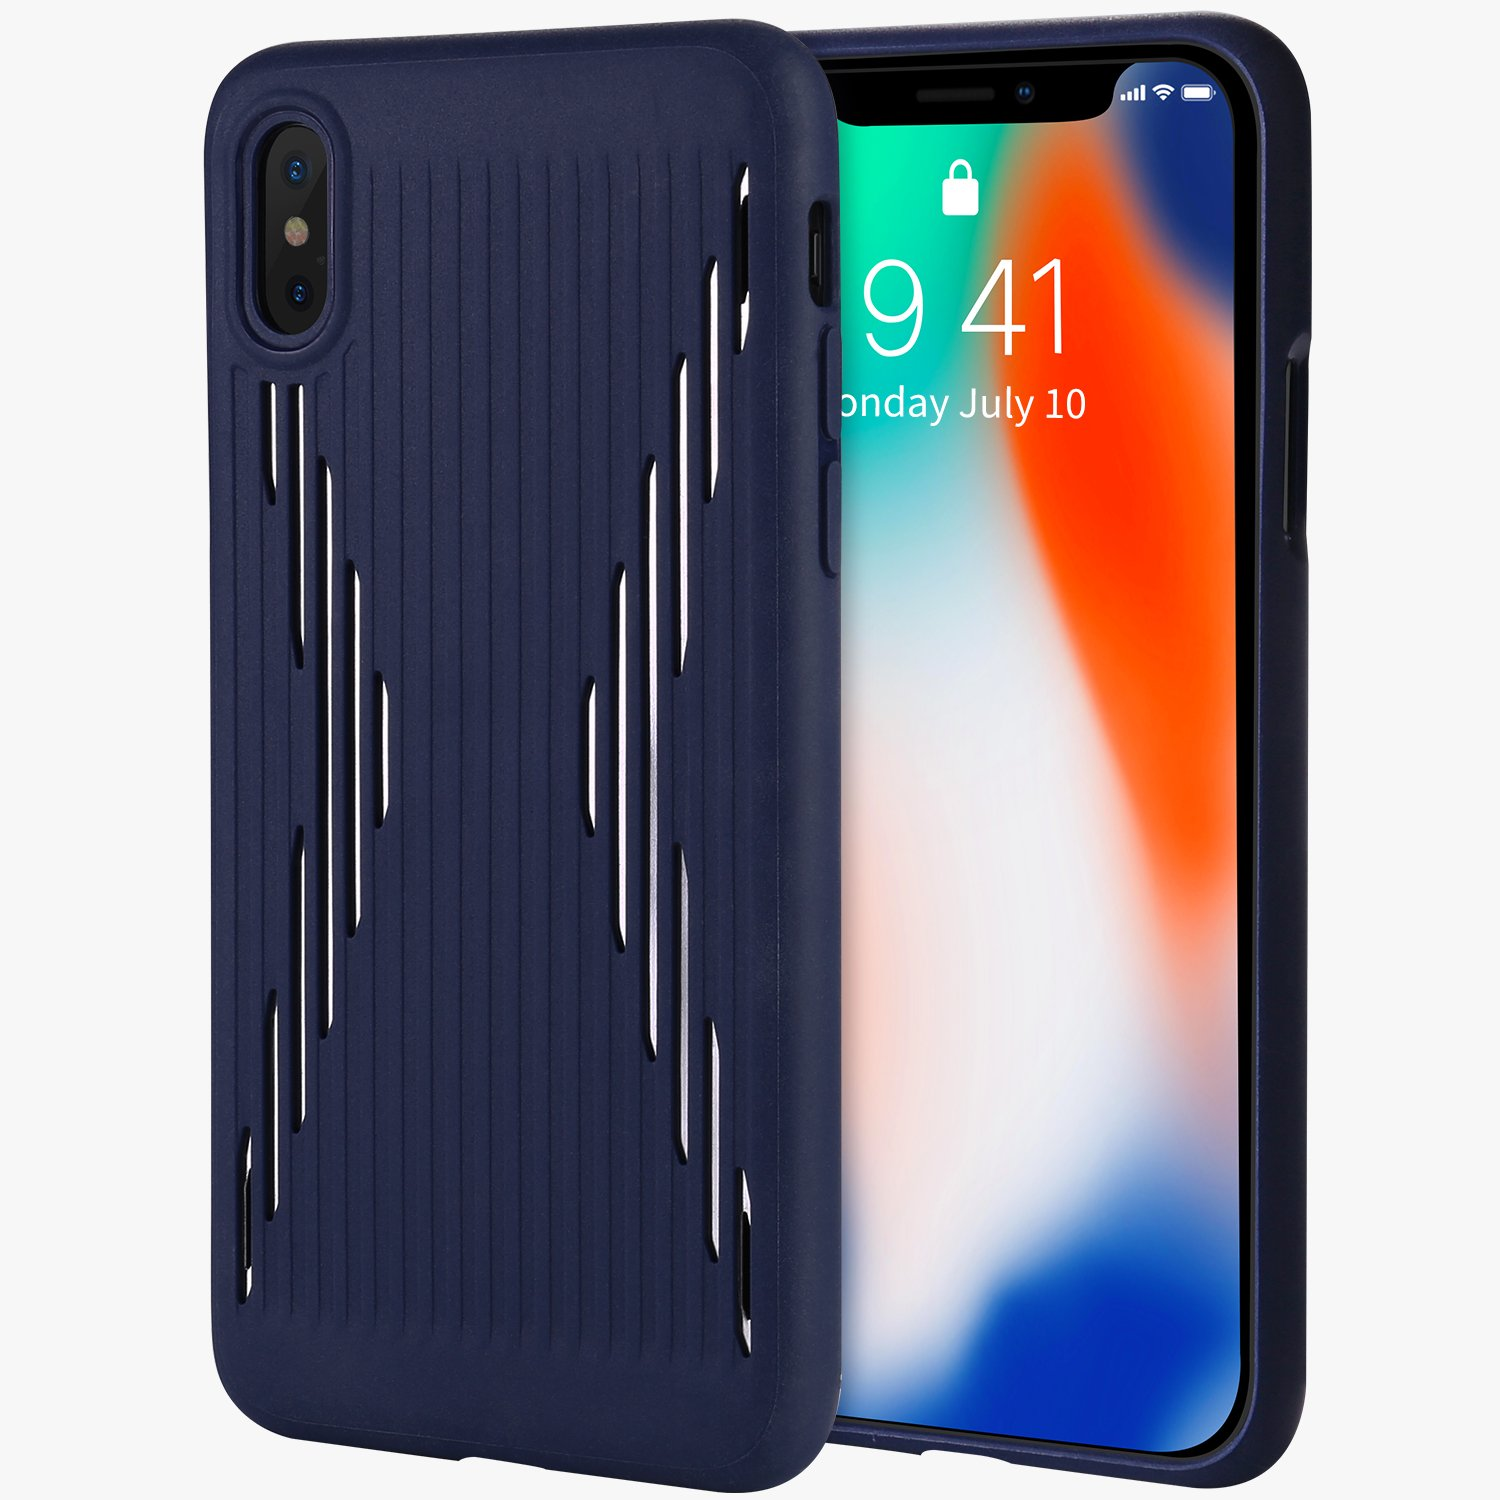 new concept f39d9 36193 iPhone X / 10 rubber case- silicone soft TPU hybred dual layer  shock-absorption anti-scratch slim case with metal sheet inside cover for  Apple iPhone ...